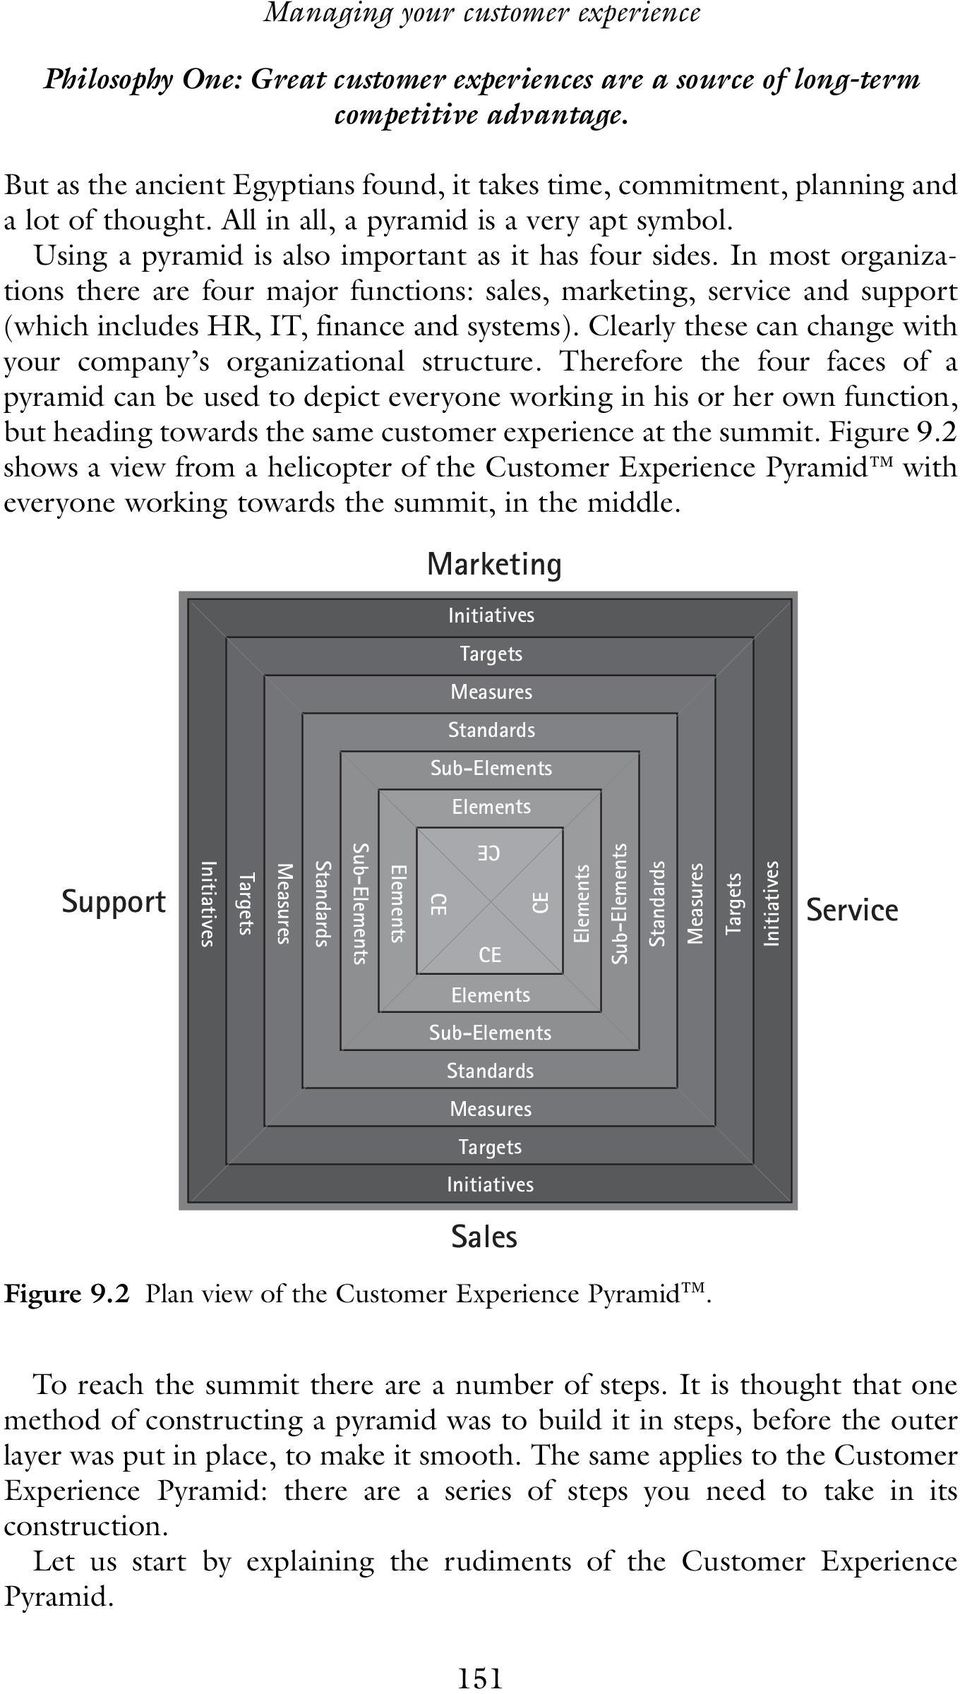 Using a pyramid is also important as it has four sides. In most organizations there are four major functions: sales, marketing, service and support (which includes HR, IT, finance and systems).